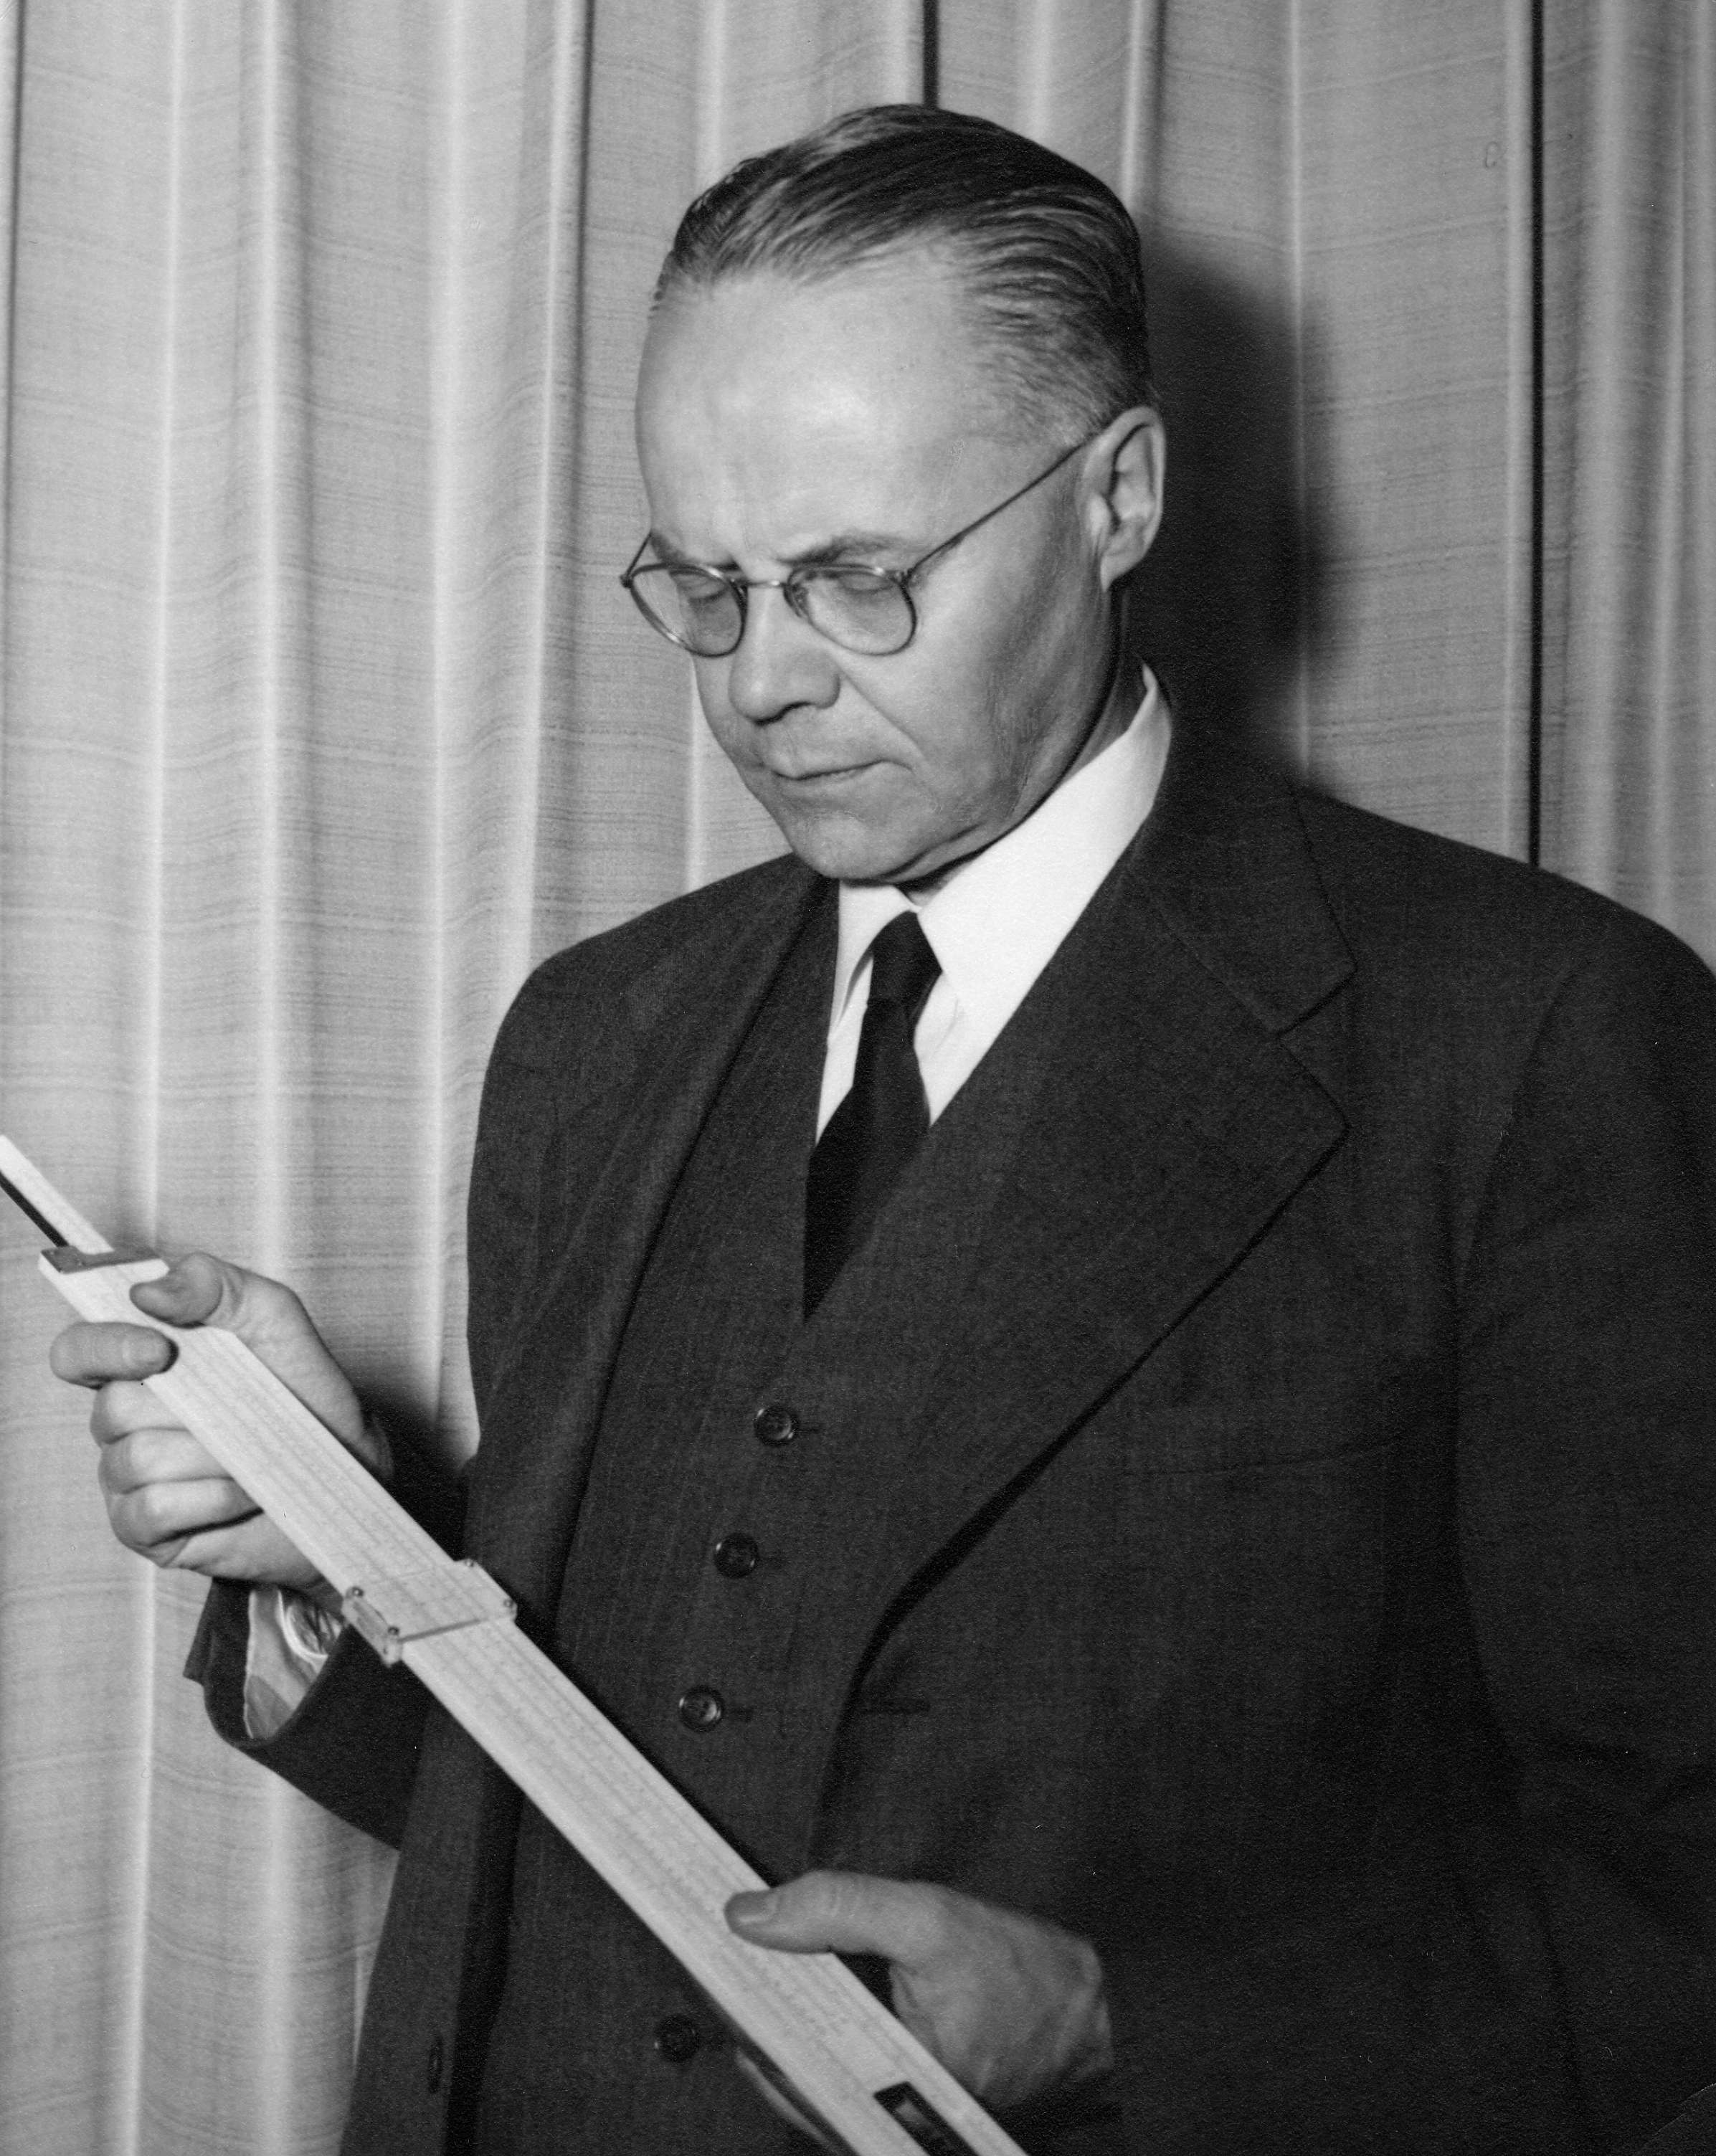 Otto Struve viewing a slide rule